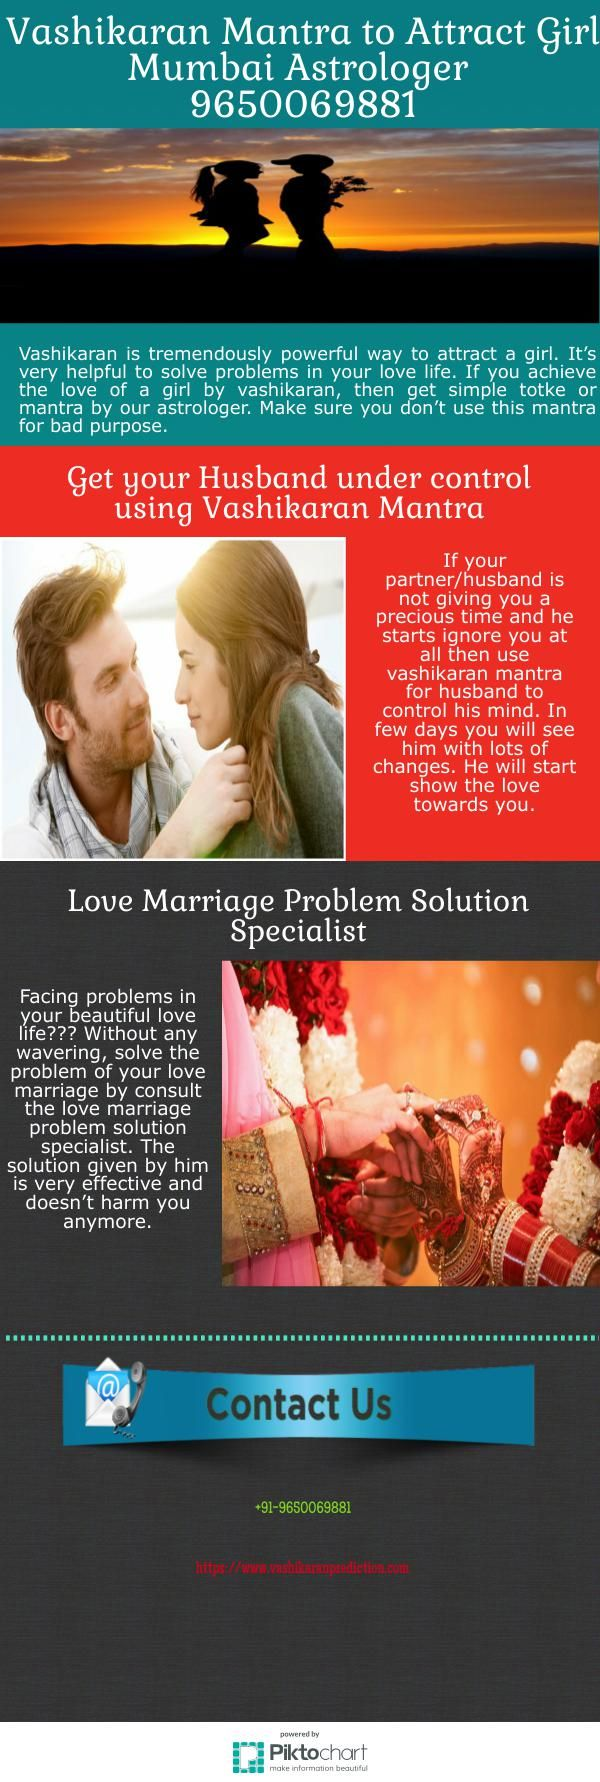 matrimonial resume format%0A Shyam Das Ji is the best astrologer and famous vashikaran specialist in  Mumbai to solve every